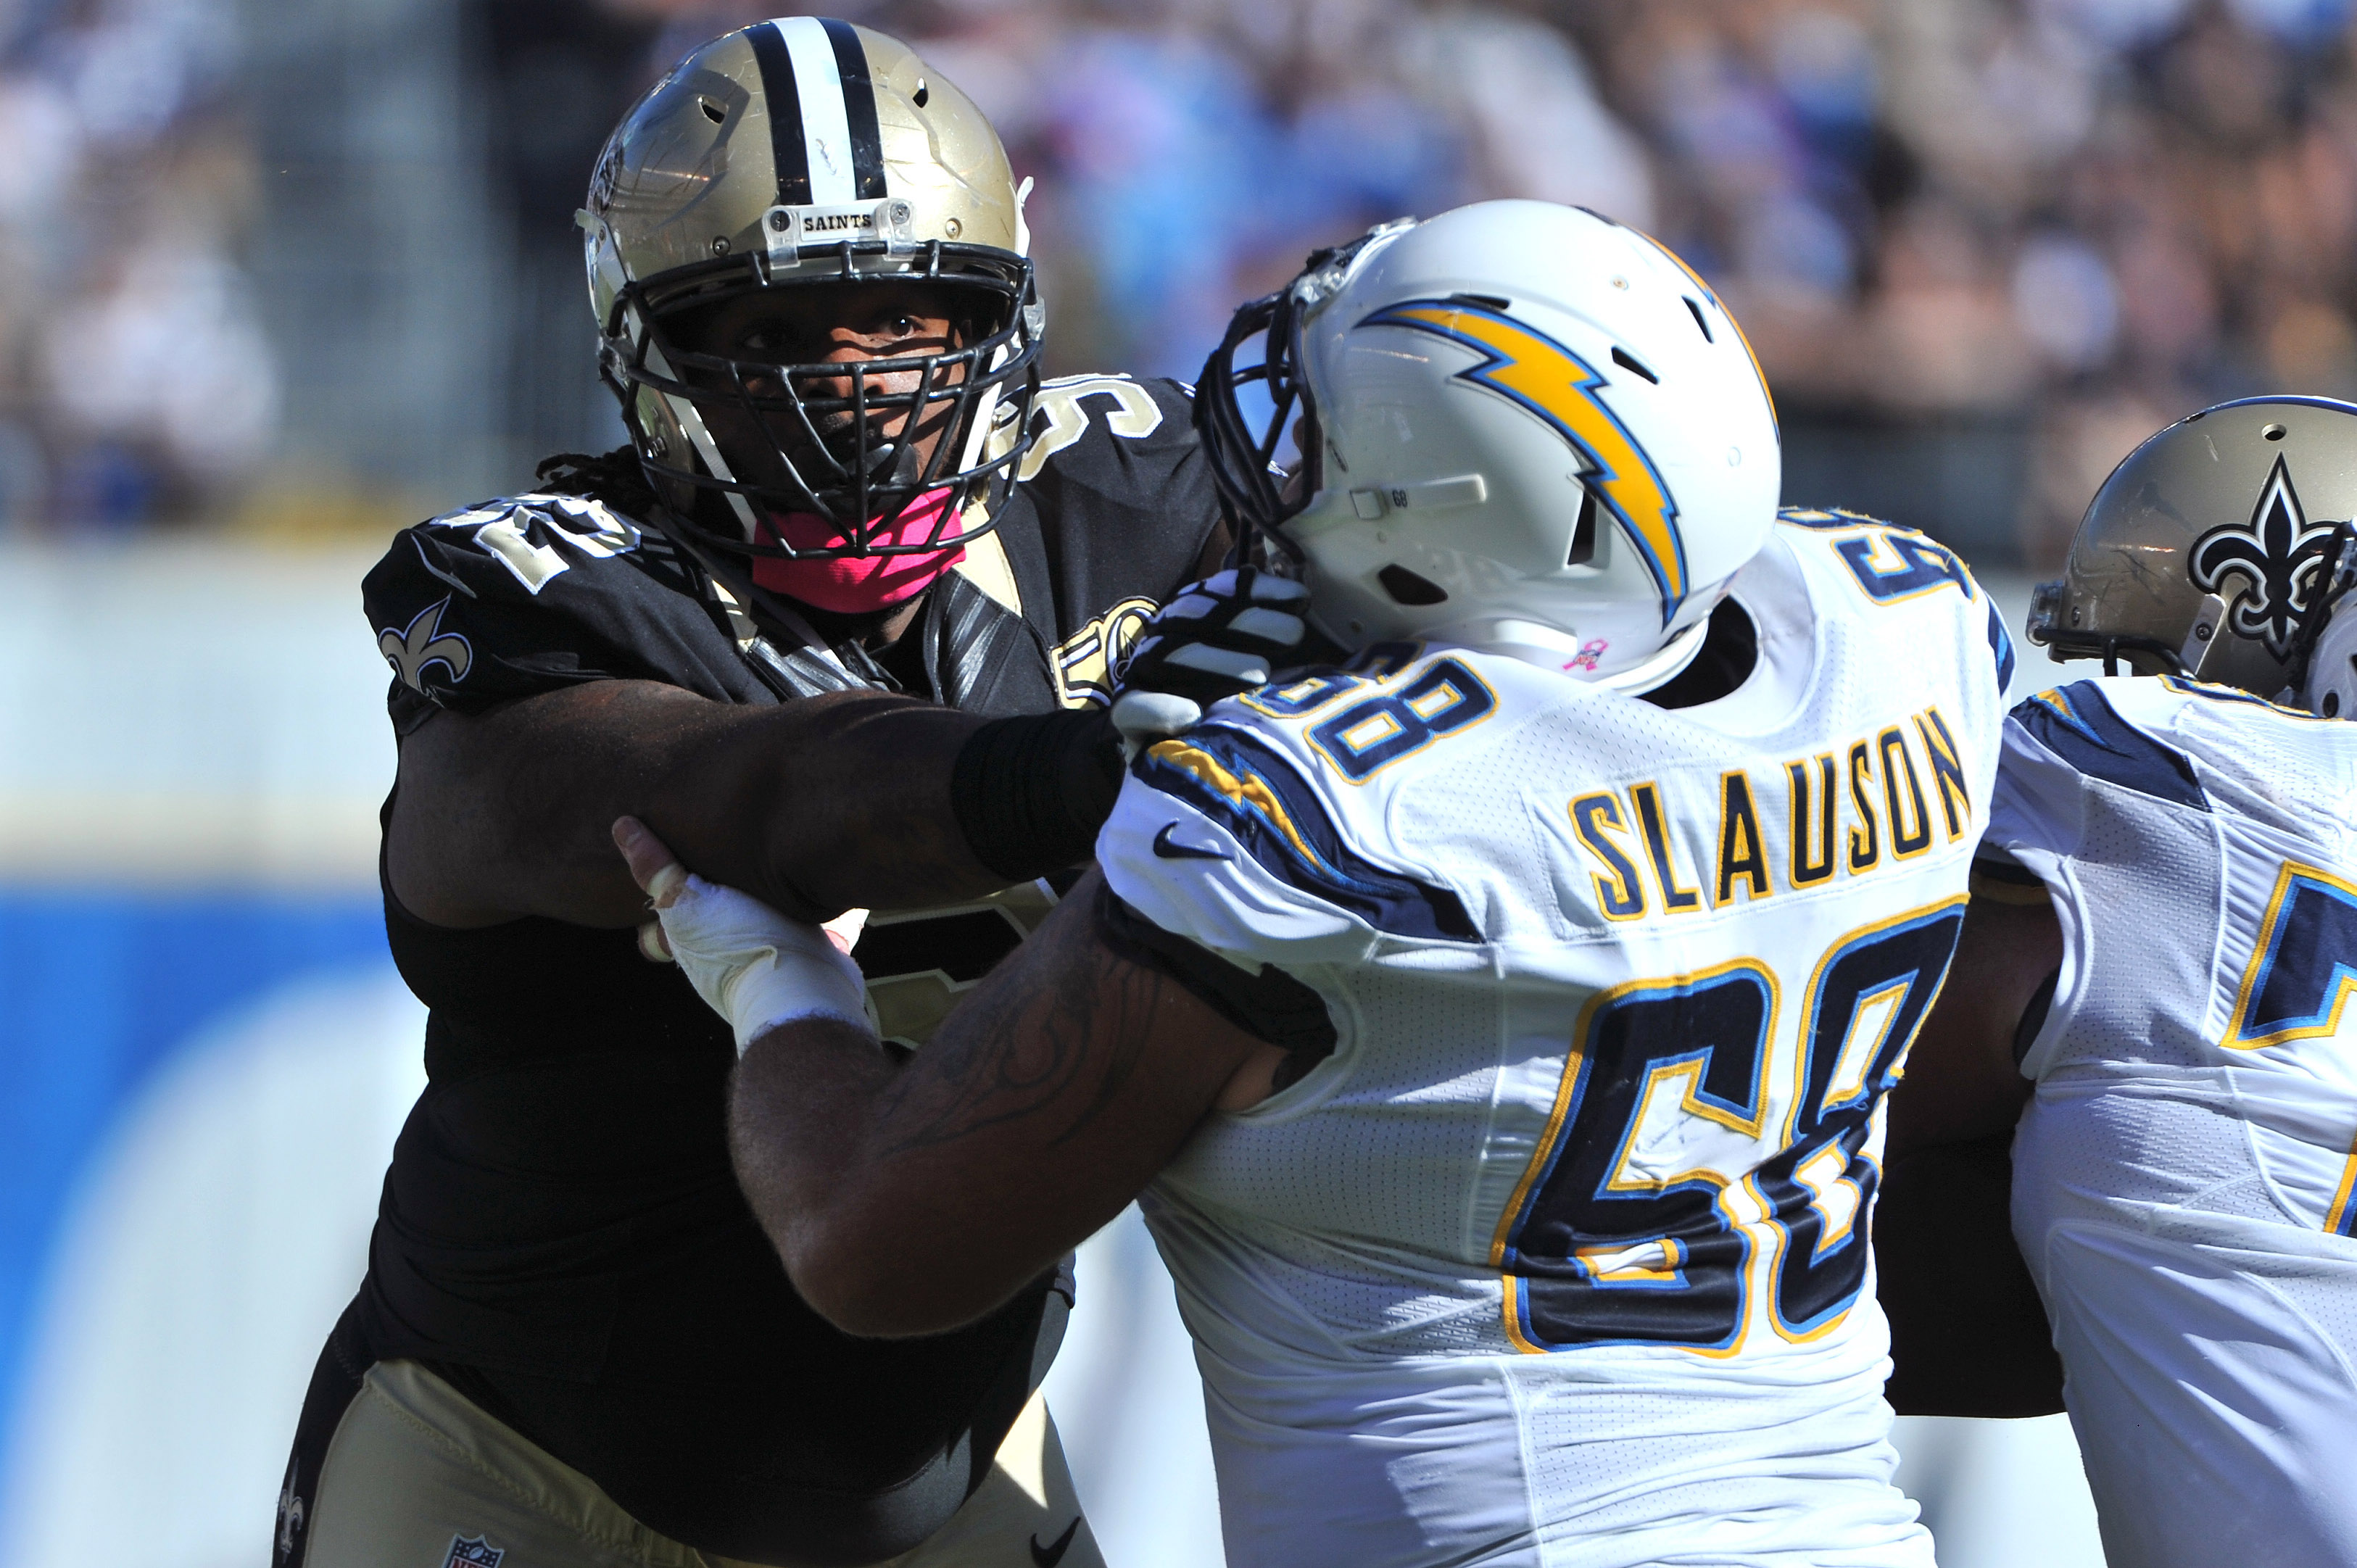 9587249-nfl-new-orleans-saints-at-san-diego-chargers